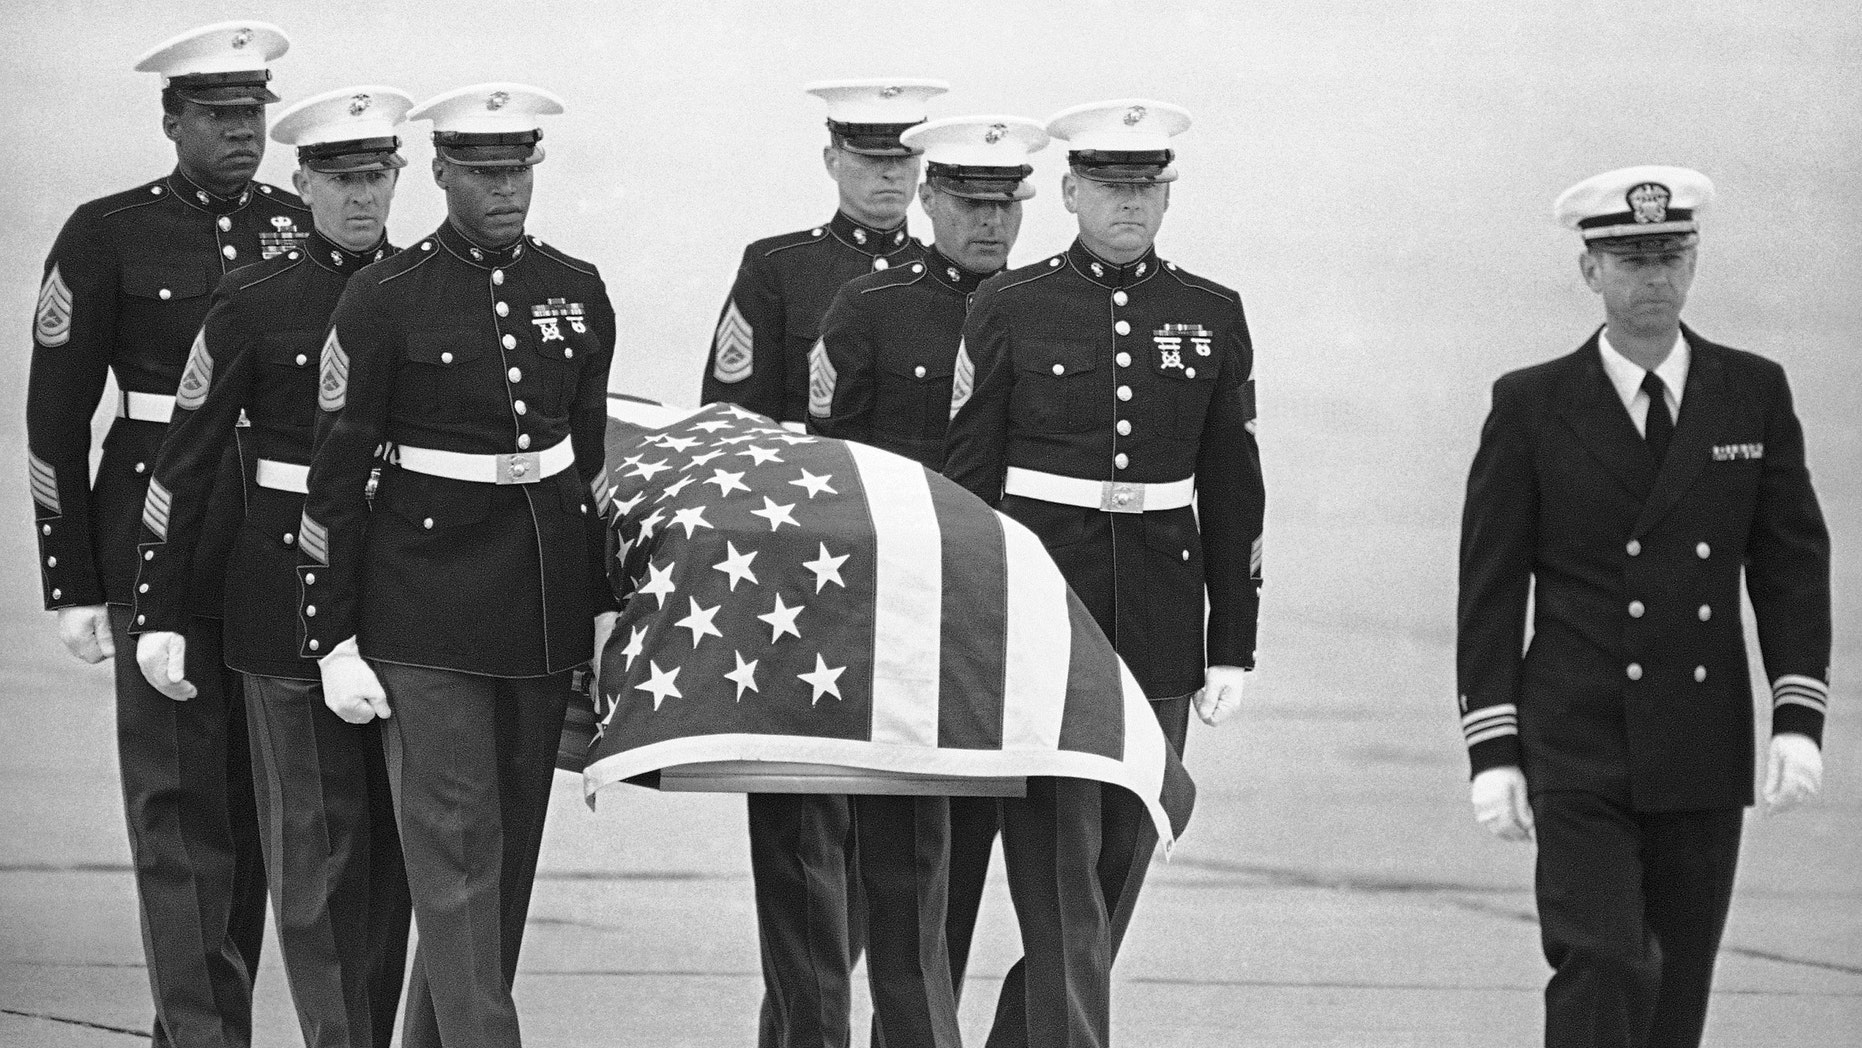 FILE - In this March 8, 1985, file photo, U.S. Marine Corps pallbearers carry the casket holding the body of slain U.S. Drug Enforcement agent Enrique Camarena Salazar after it arrived at North Island Naval Air Station, in San Diego.